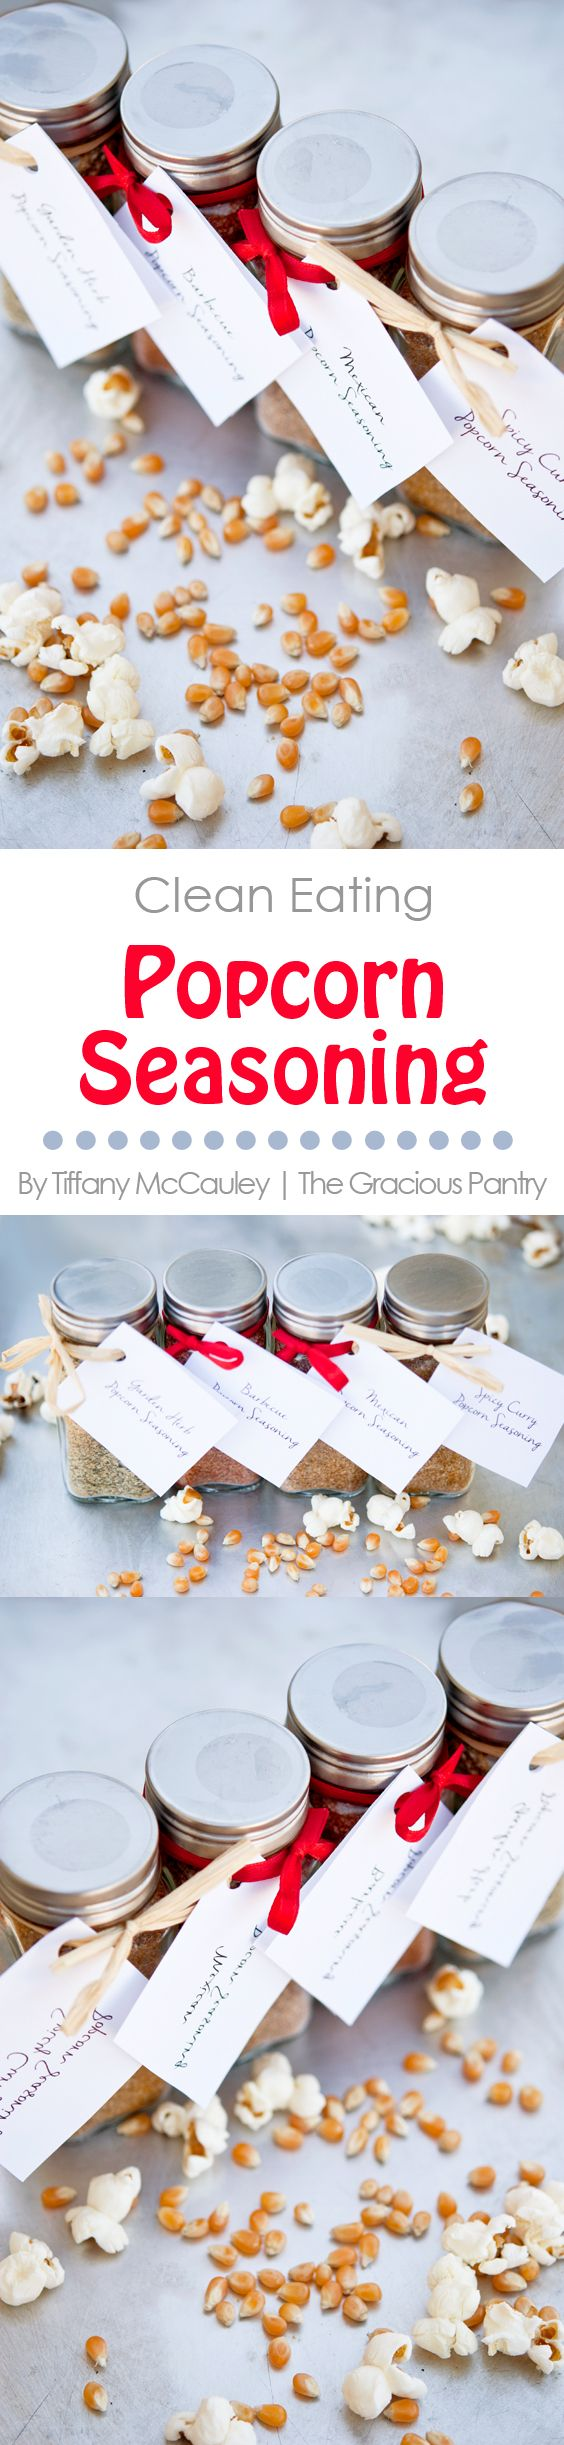 Clean Eating Recipes | Food Gifts | Holiday Gift Ideas | Homemade Gifts | Popcorn Seasoning Recipe